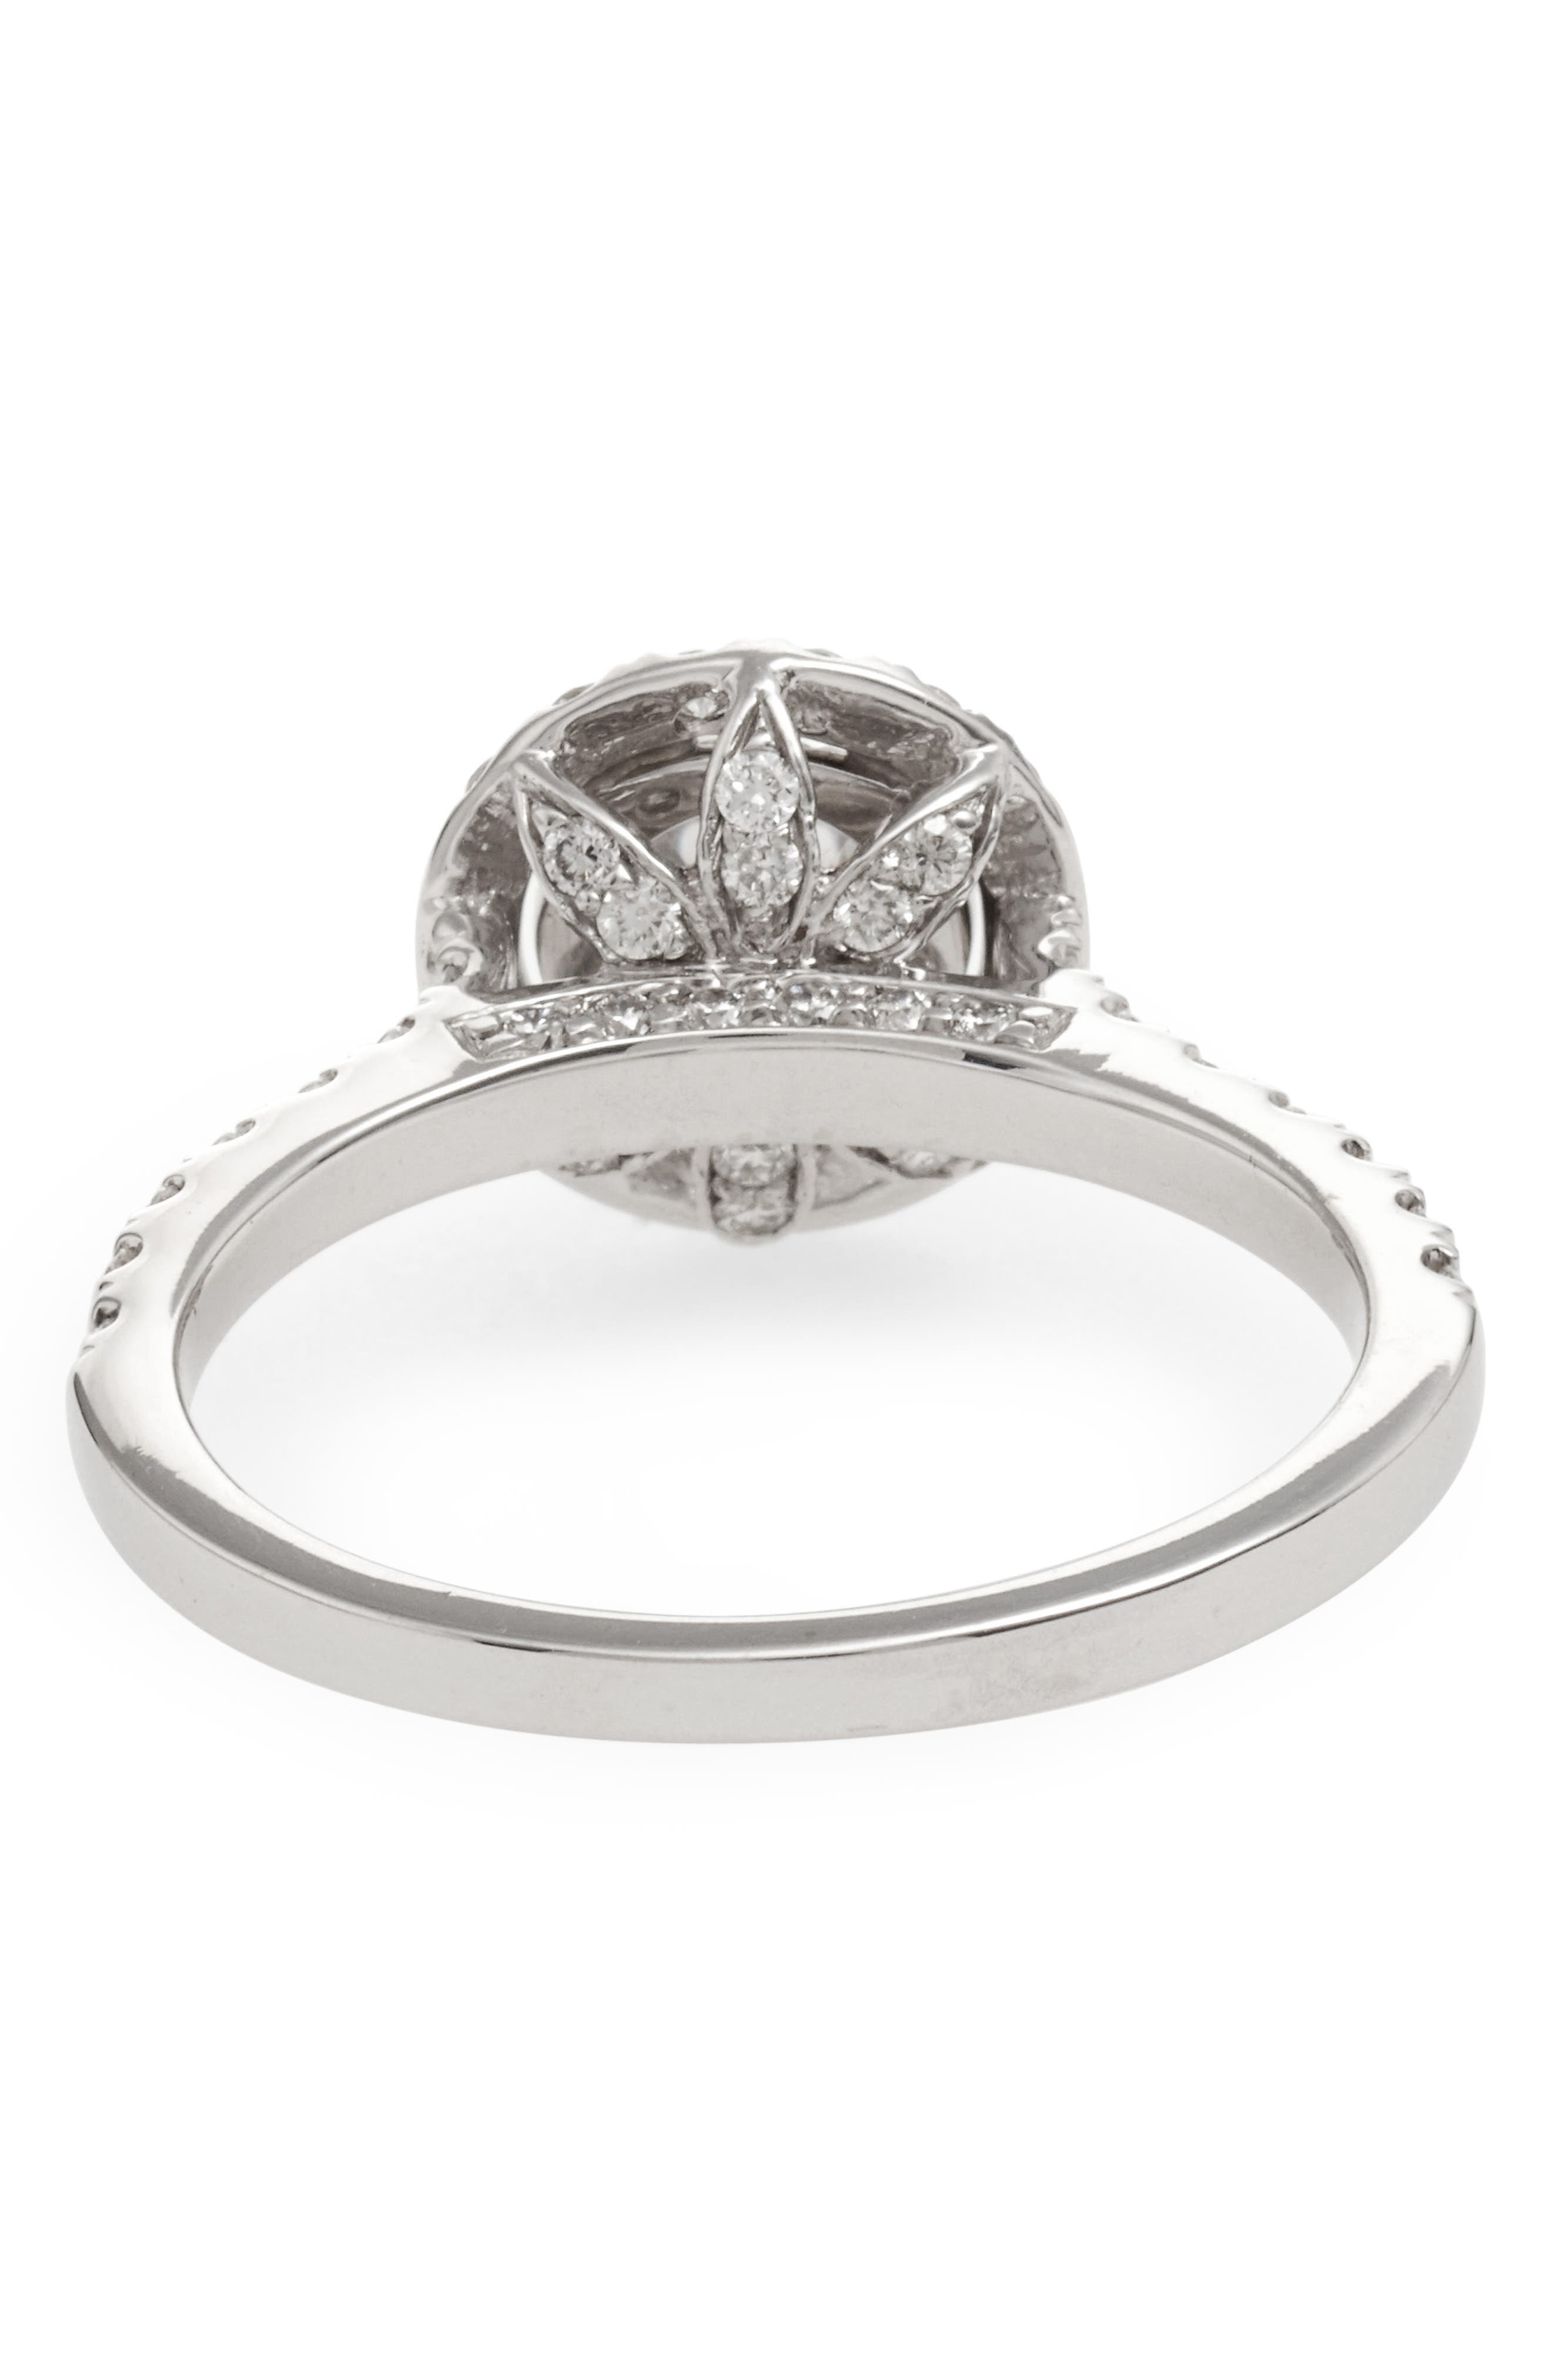 Alternate Image 4  - Bony Levy Pavé Diamond Leaf Engagement Ring Setting (Nordstrom Exclusive)